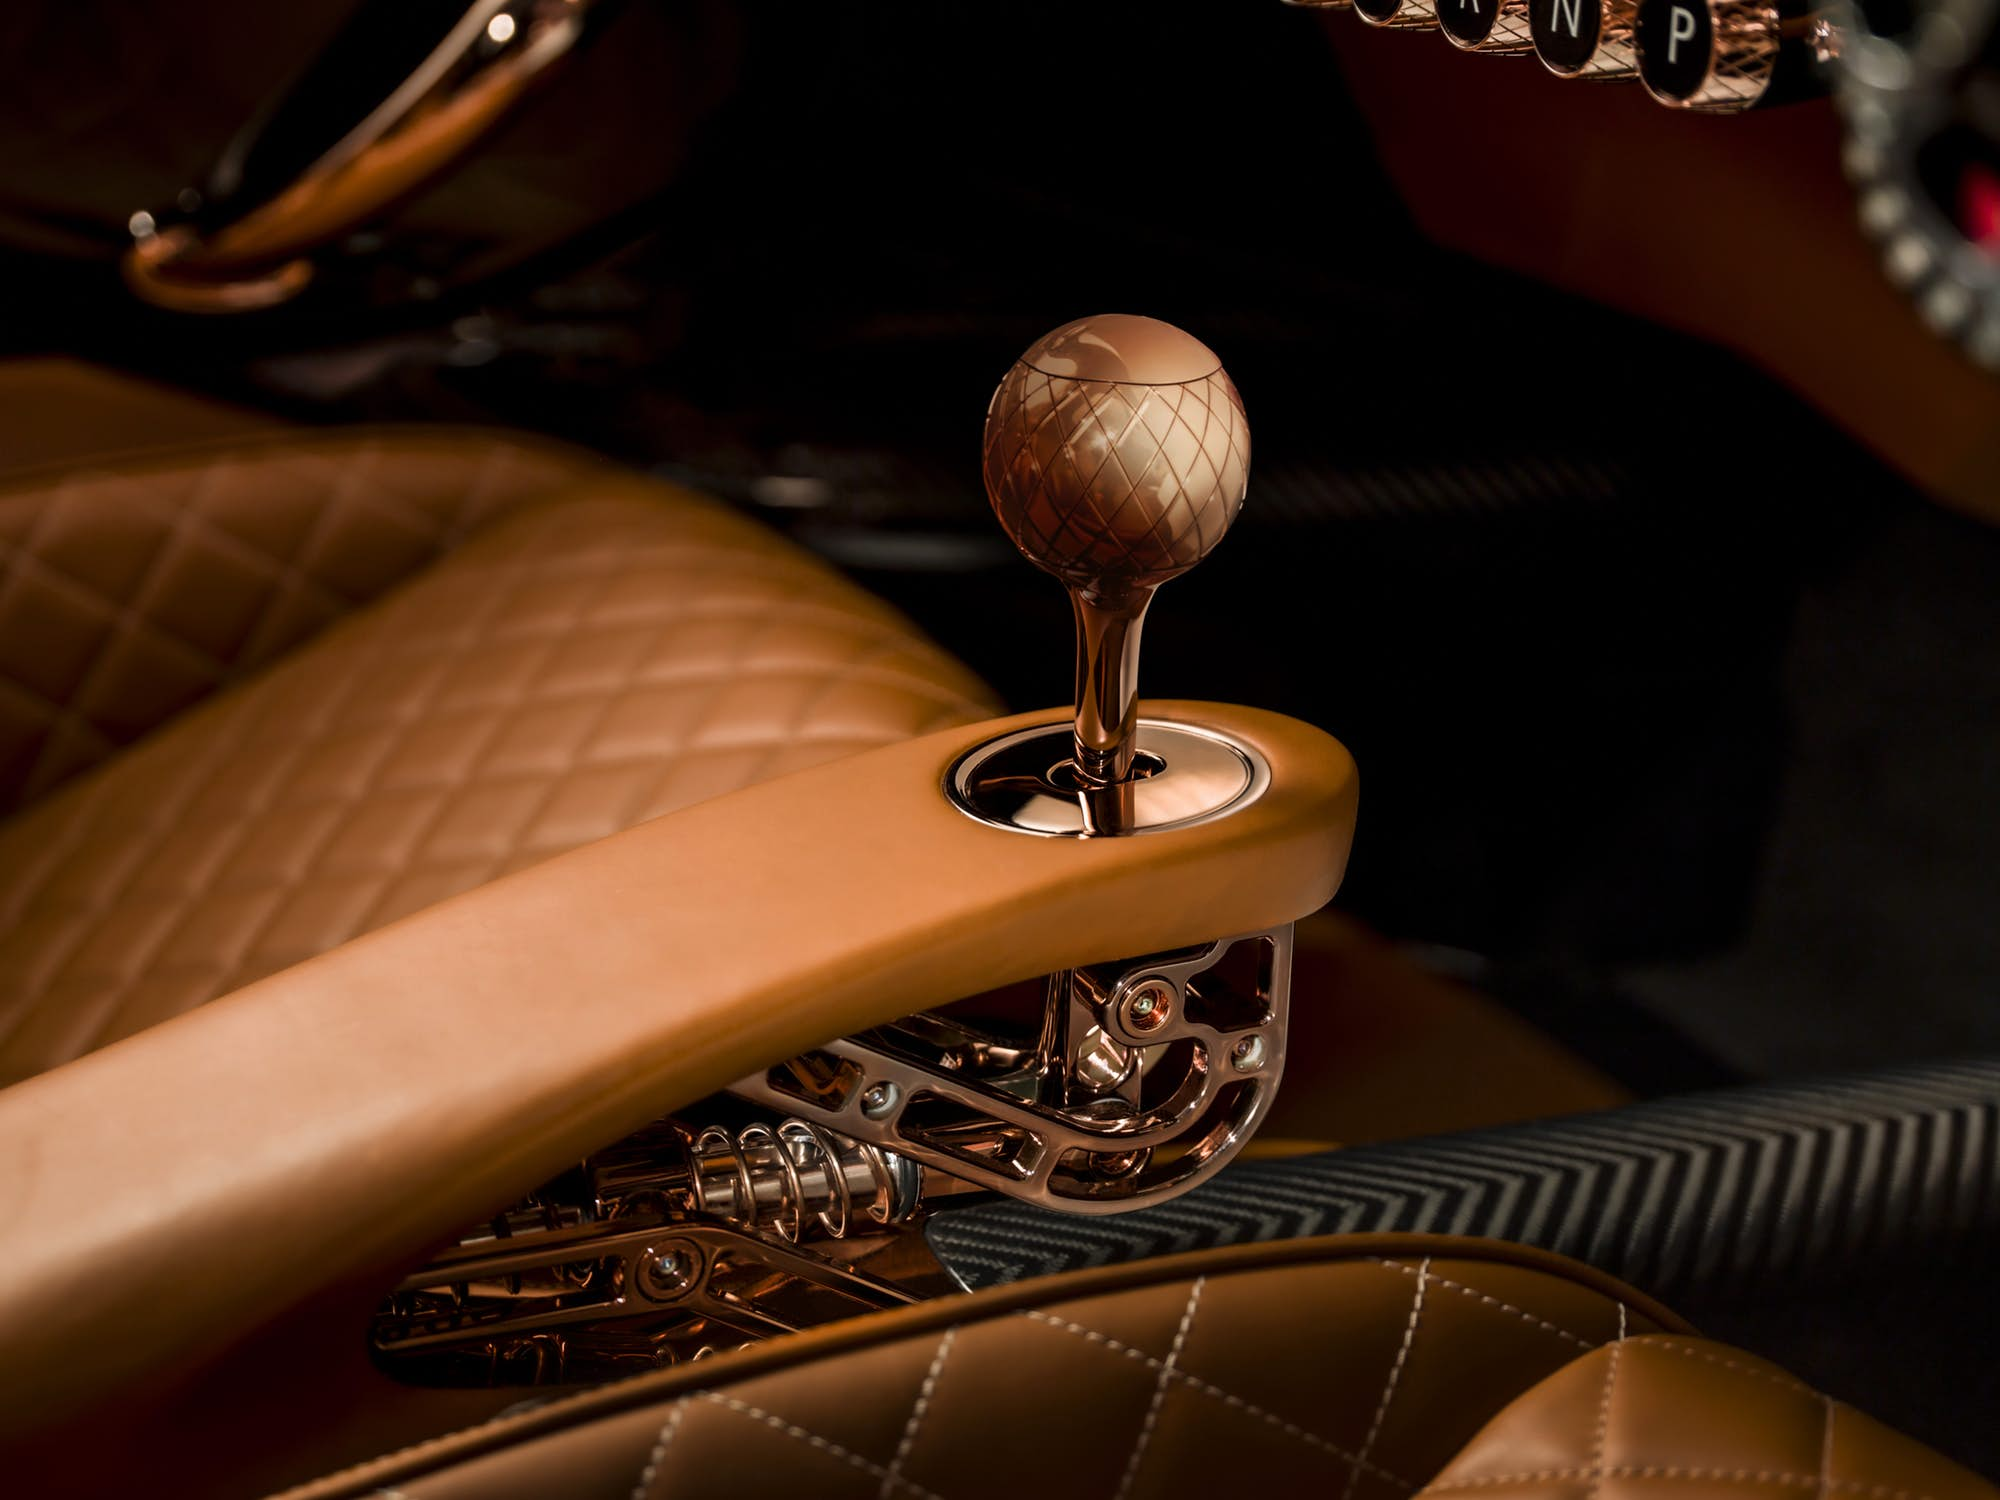 This gearshift lever mechanism design borders on steampunk